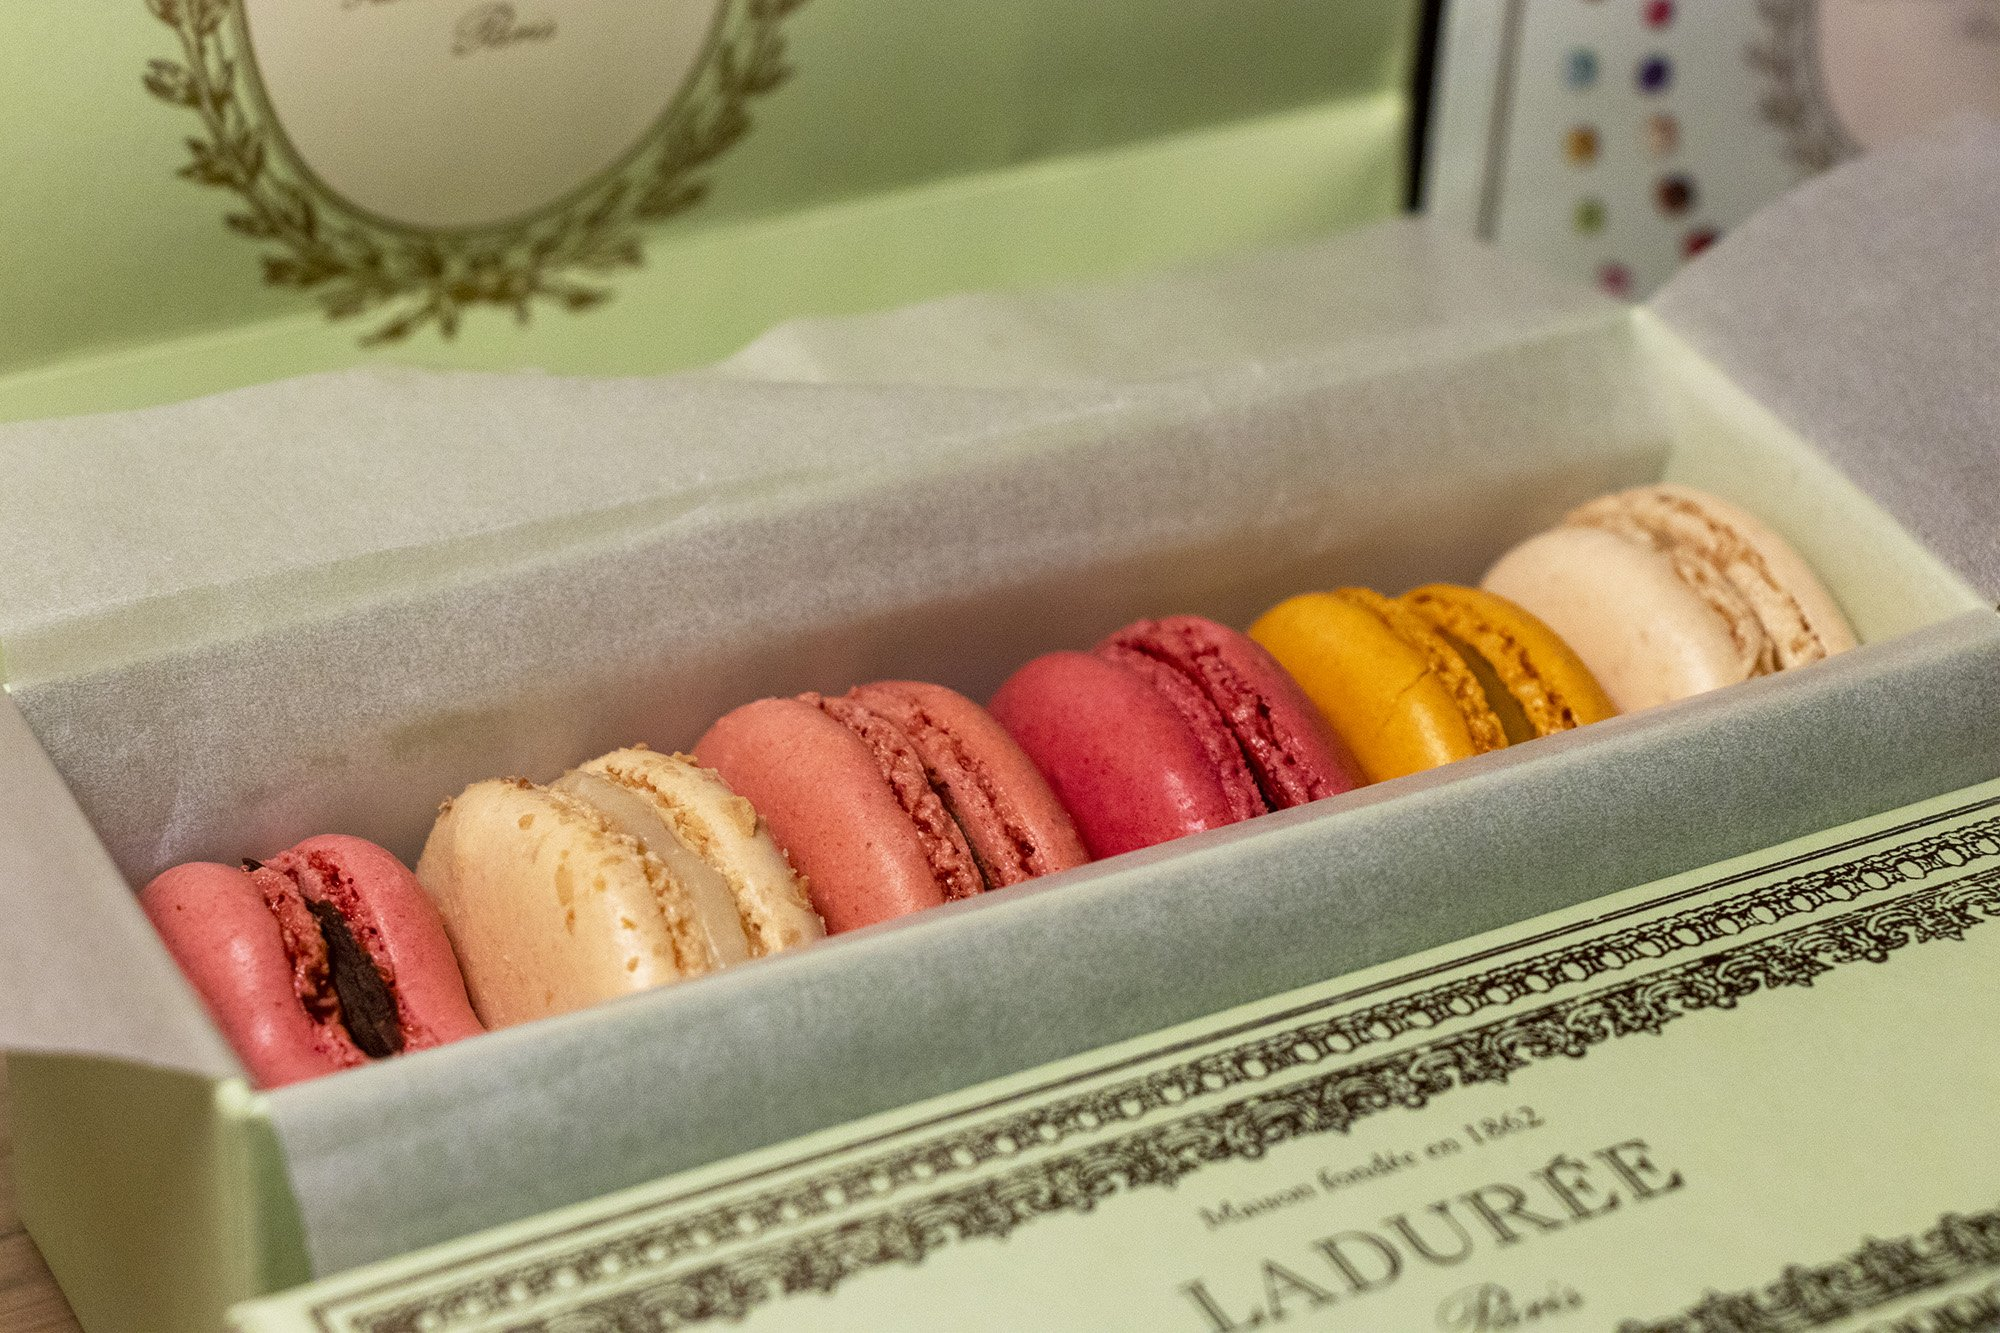 Laduree macarons box